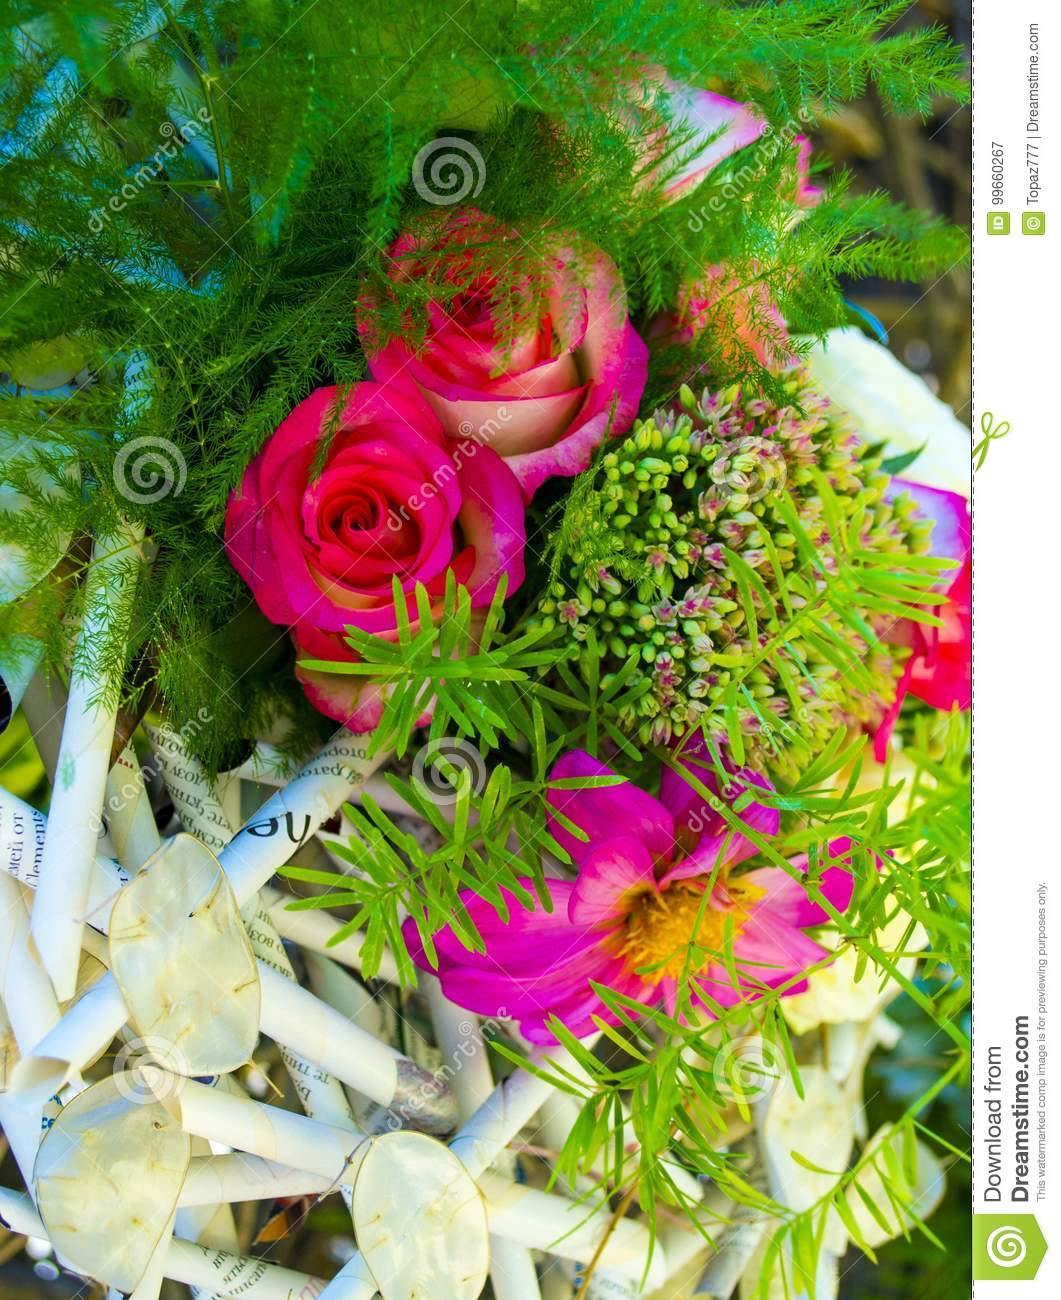 Bouquet of red roses beautiful flowers background for wedding scene beautiful flowers background for wedding scene izmirmasajfo